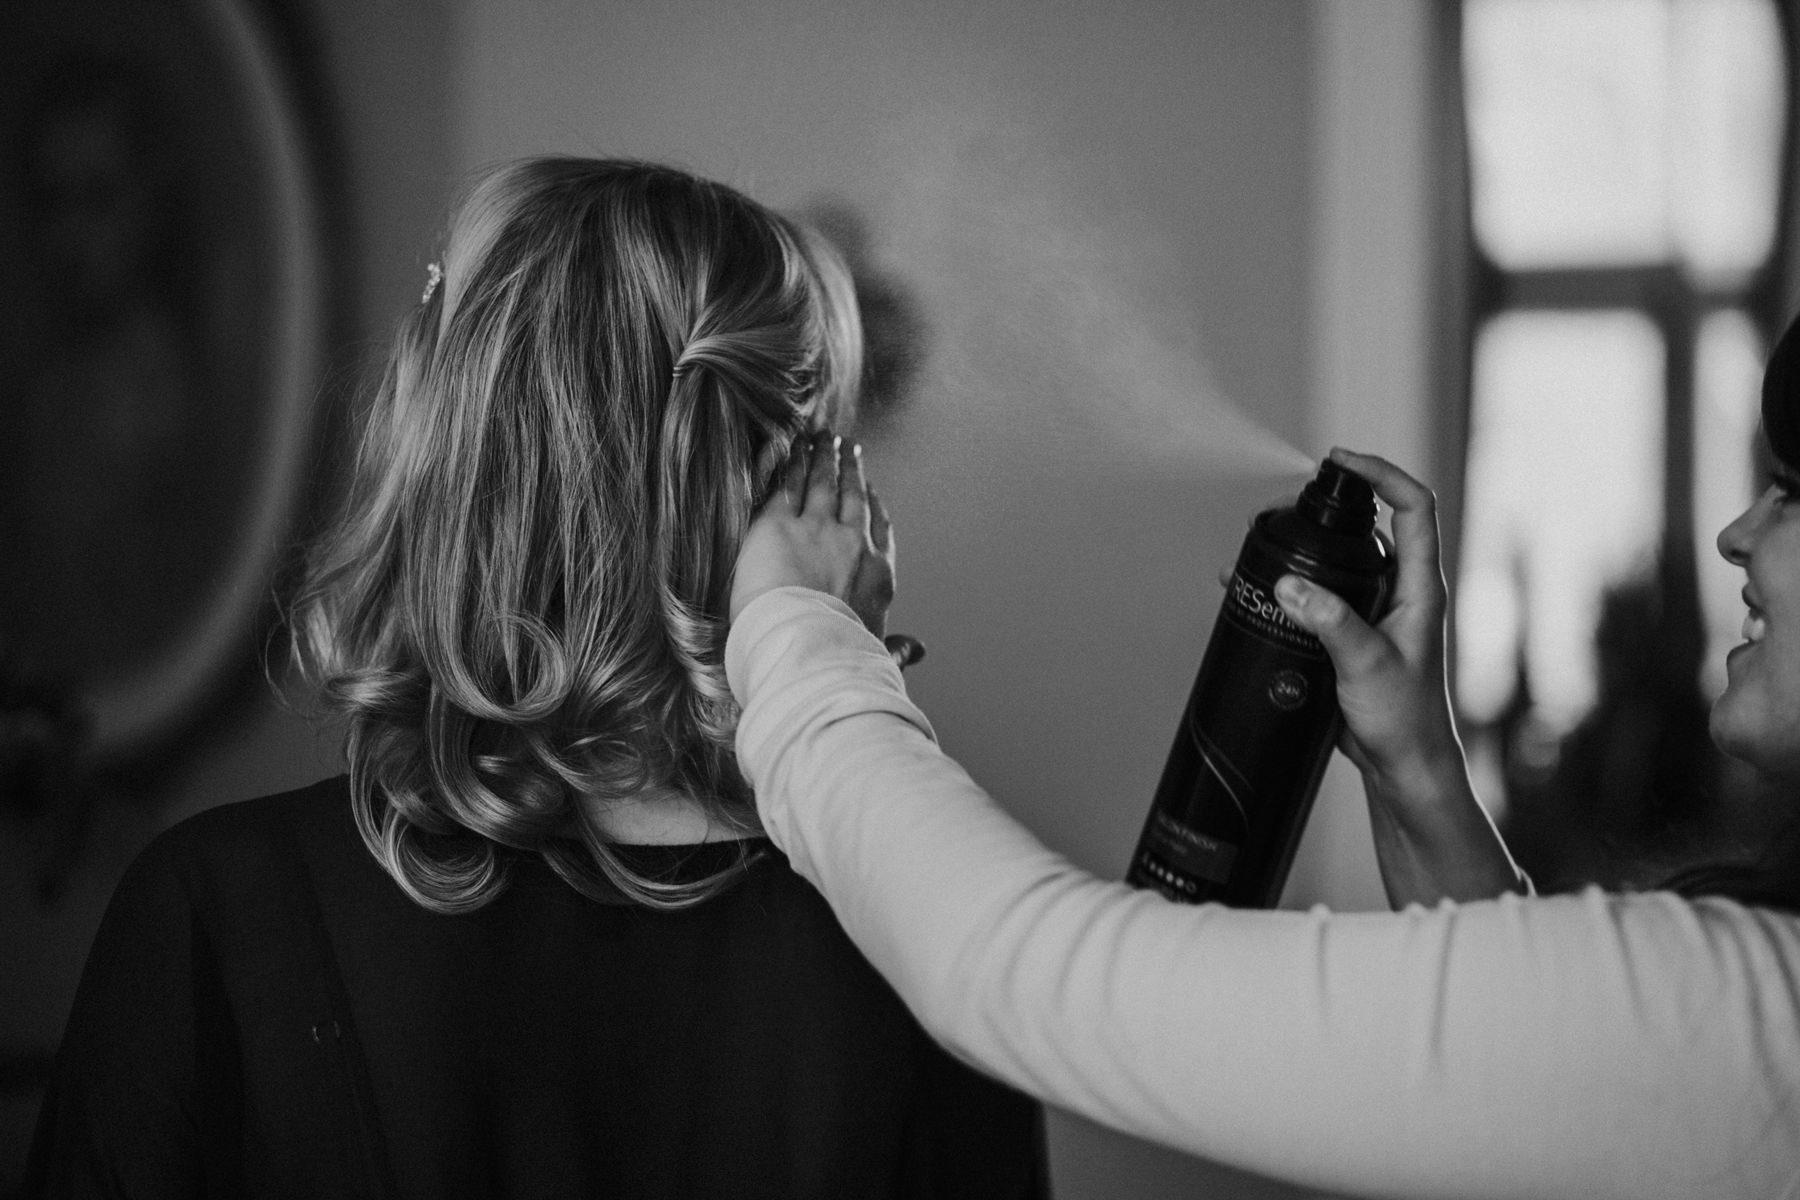 bride hairsprayed BW repportage wedding photographer.jpg